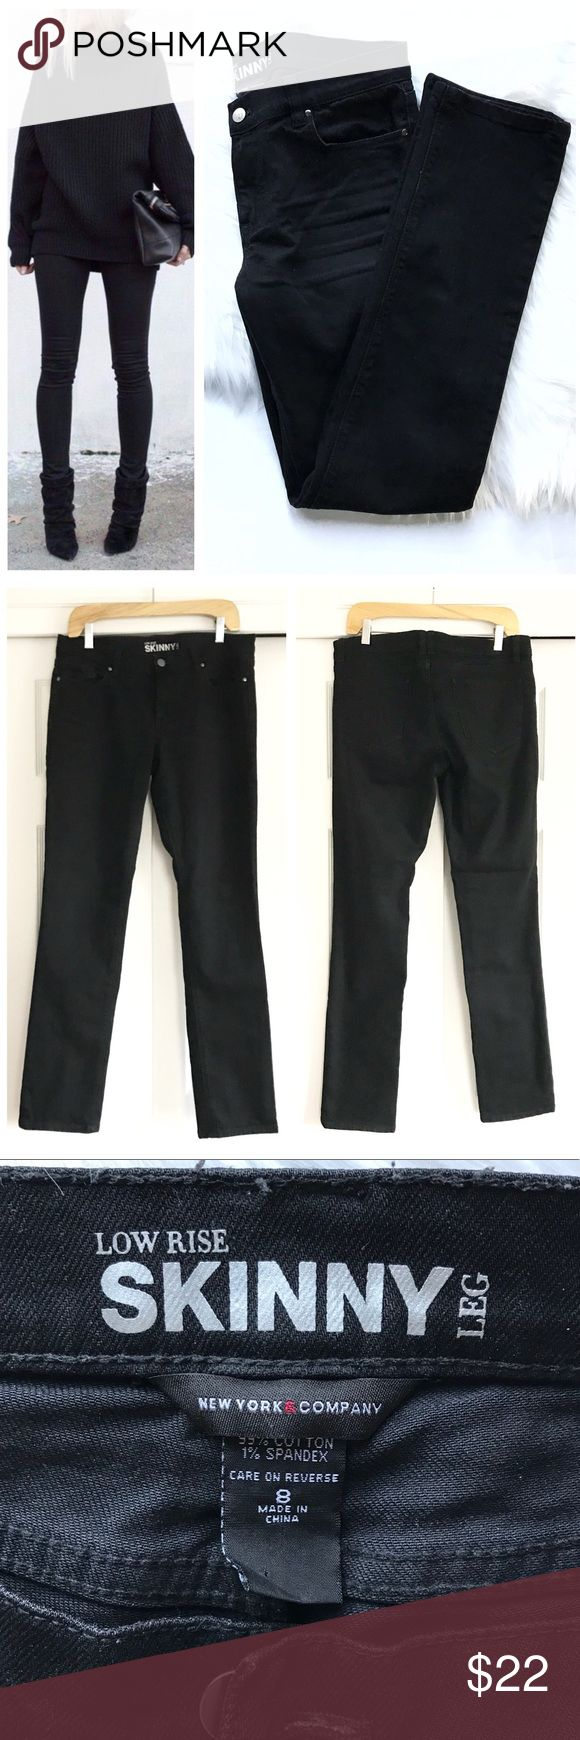 """NY & Co Black Skinny Jeans Black jeans with a little fade at whispers. front and back pockets. New York and Company skinny leg low rise size 8. 99% cotton 1% spandex. Inseam approx 31"""". First photo on left not actual item just showing for styling inspiration! New York & Company Jeans Skinny"""